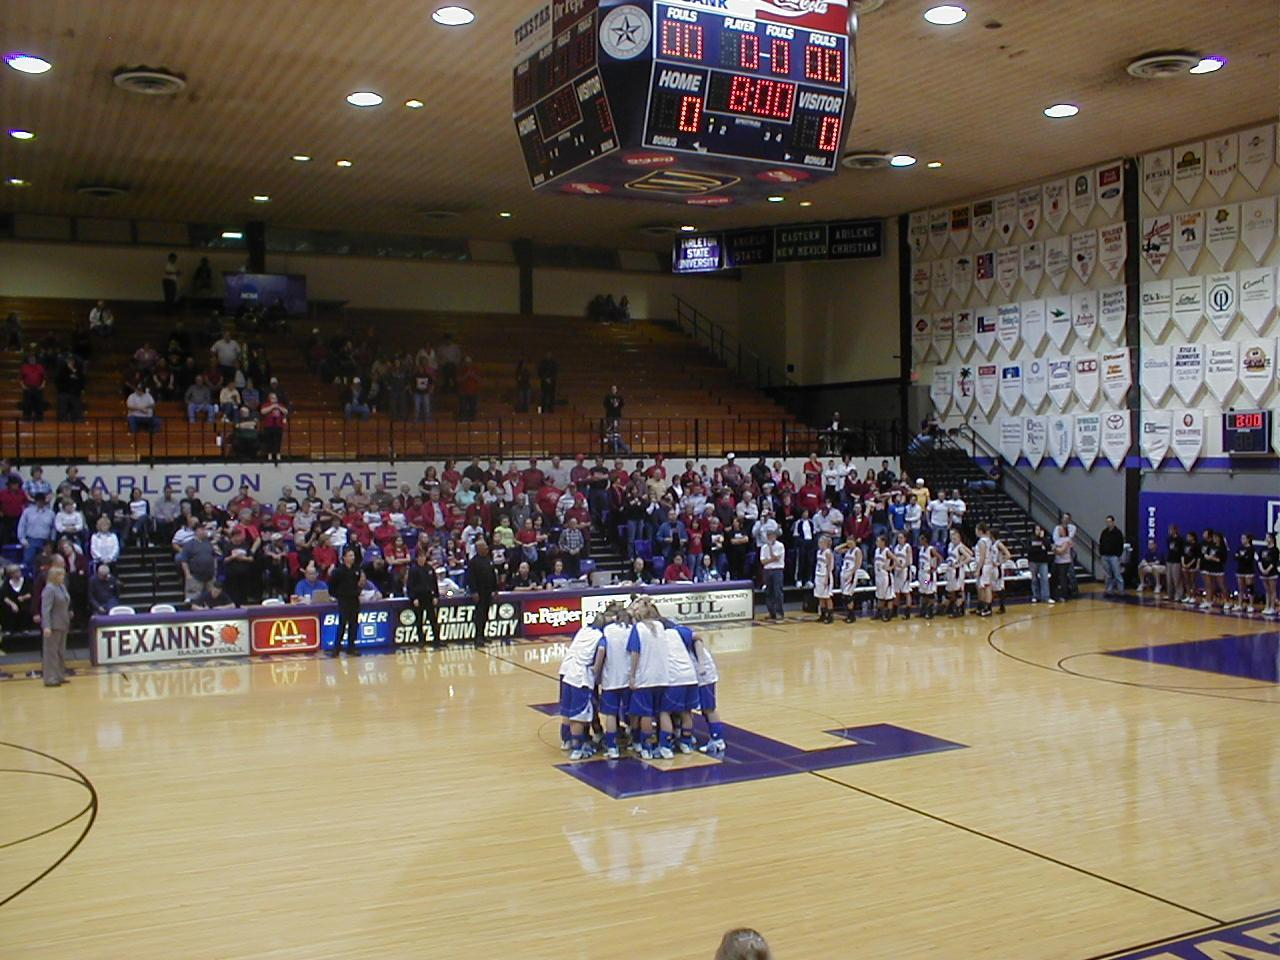 Playing in the Regional Finals at Tarleton in 2008